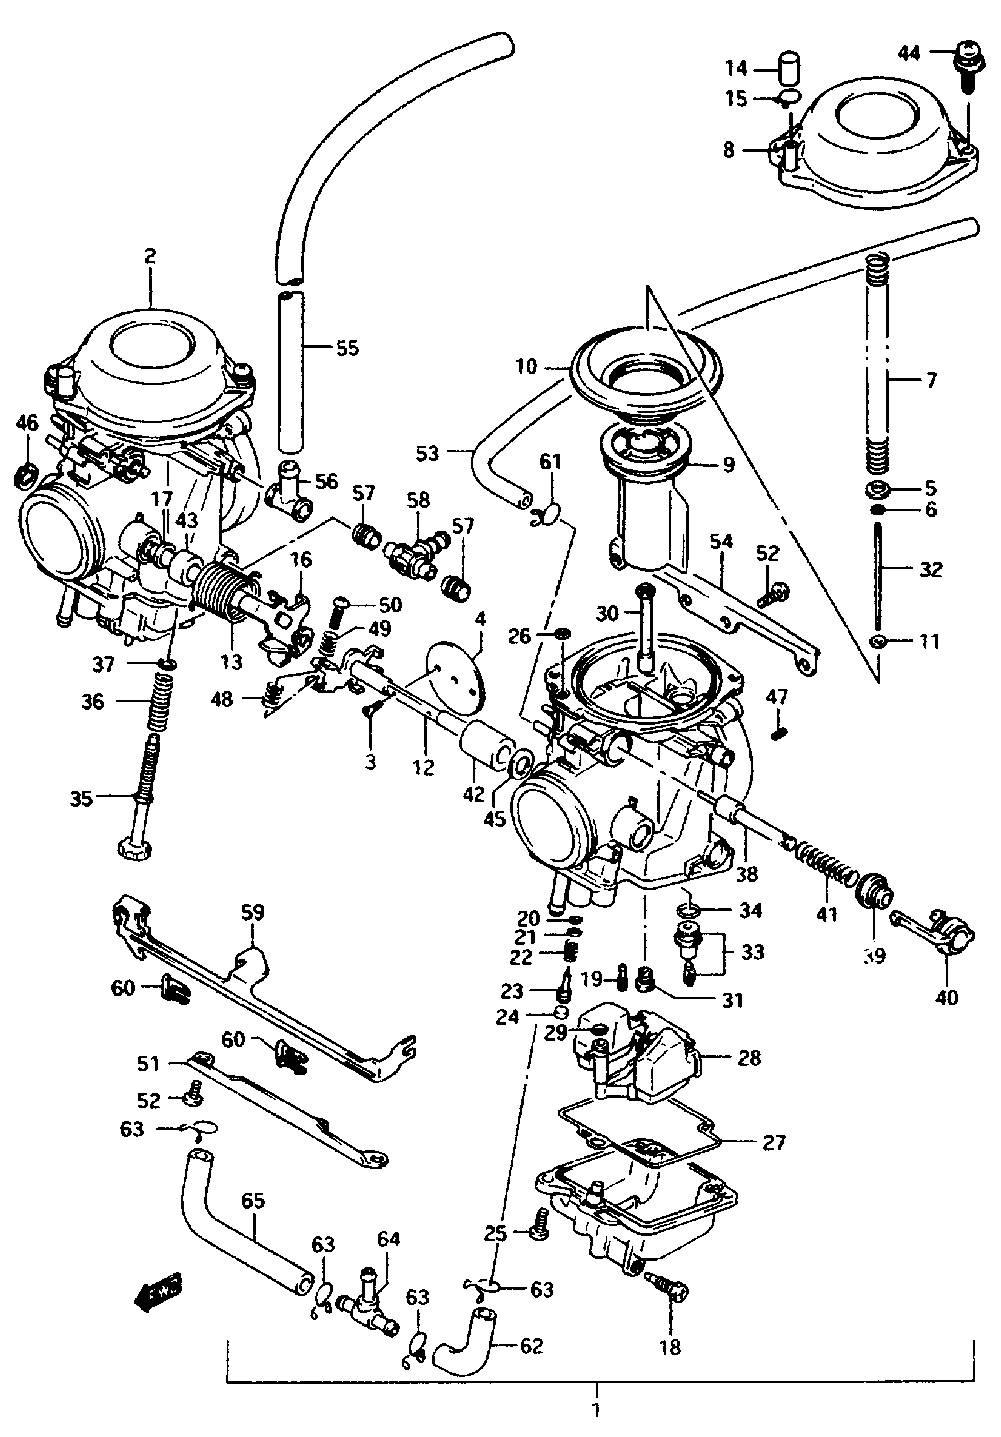 Suzuki Gsx F 600 Engine Diagram on 2013 suzuki gsxr 1000